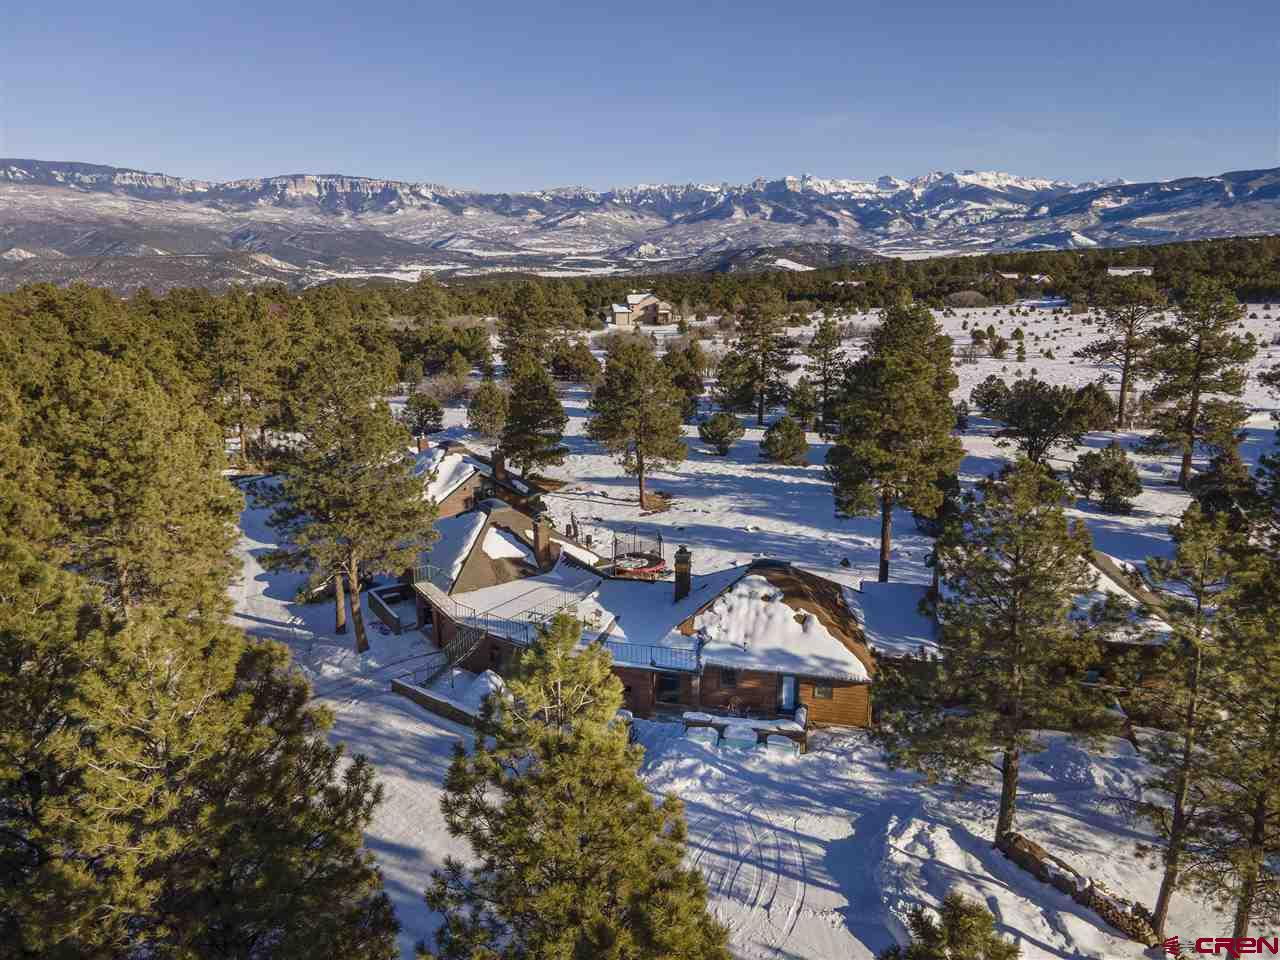 This brand newly remodeled, sunny, south facing condo looks more like a mountain cottage separated by a garage to either side for privacy and quiet. Located in the Loghill subdivision of Ridgway, it has nice southern views of the Cimarron Mountain Range from the upper and southern decks. In addition to the interior remodel that was completed the first week of January 2021, the condo has brand new LG appliances. 79 Meadow Estates has 2 bedrooms, 2 baths, fireplace, one-car garage, two parking spaces, open floor plan, vaulted ceilings, a flex room to use as an office or 3rd bedroom, laundry room, low taxes and low HOA dues that includes septic and plowing.  Located 7 miles from Ridgway, and 50 minutes from Telluride. Imagine walking out your door to cross country ski, hike, bike on miles of trails—and there is a golf course in the Loghill subdivision. School bus service is available. There are 5-condo units in a semi-circle bordering Open-Space lending to quiet and privacy. Common space is treed with pinyon, juniper, cedar, and sage. All units are owner-occupied.    General Home Points: • 1032 square feet with 16-foot ceiling •  Cute cottage style home • High speed internet • Fire mitigation recently performed • Cedar siding • Recently replaced roof • Recently replaced water heater • Recently replaced carpets in bedrooms • Wood floors refinished in main living area • Slate style floors in the kitchen, bathroom and entry way • Radiant heat • Modern wood fireplace in living room • sunny and light • 2 parking spaces and 1 car garage with storage/mechanical room • Flex Room: Heated Office/Bedroom is situated off garage can be used as bedroom.  Perfect for a small family or couple or individual wanting to take in everything the area has to offer.